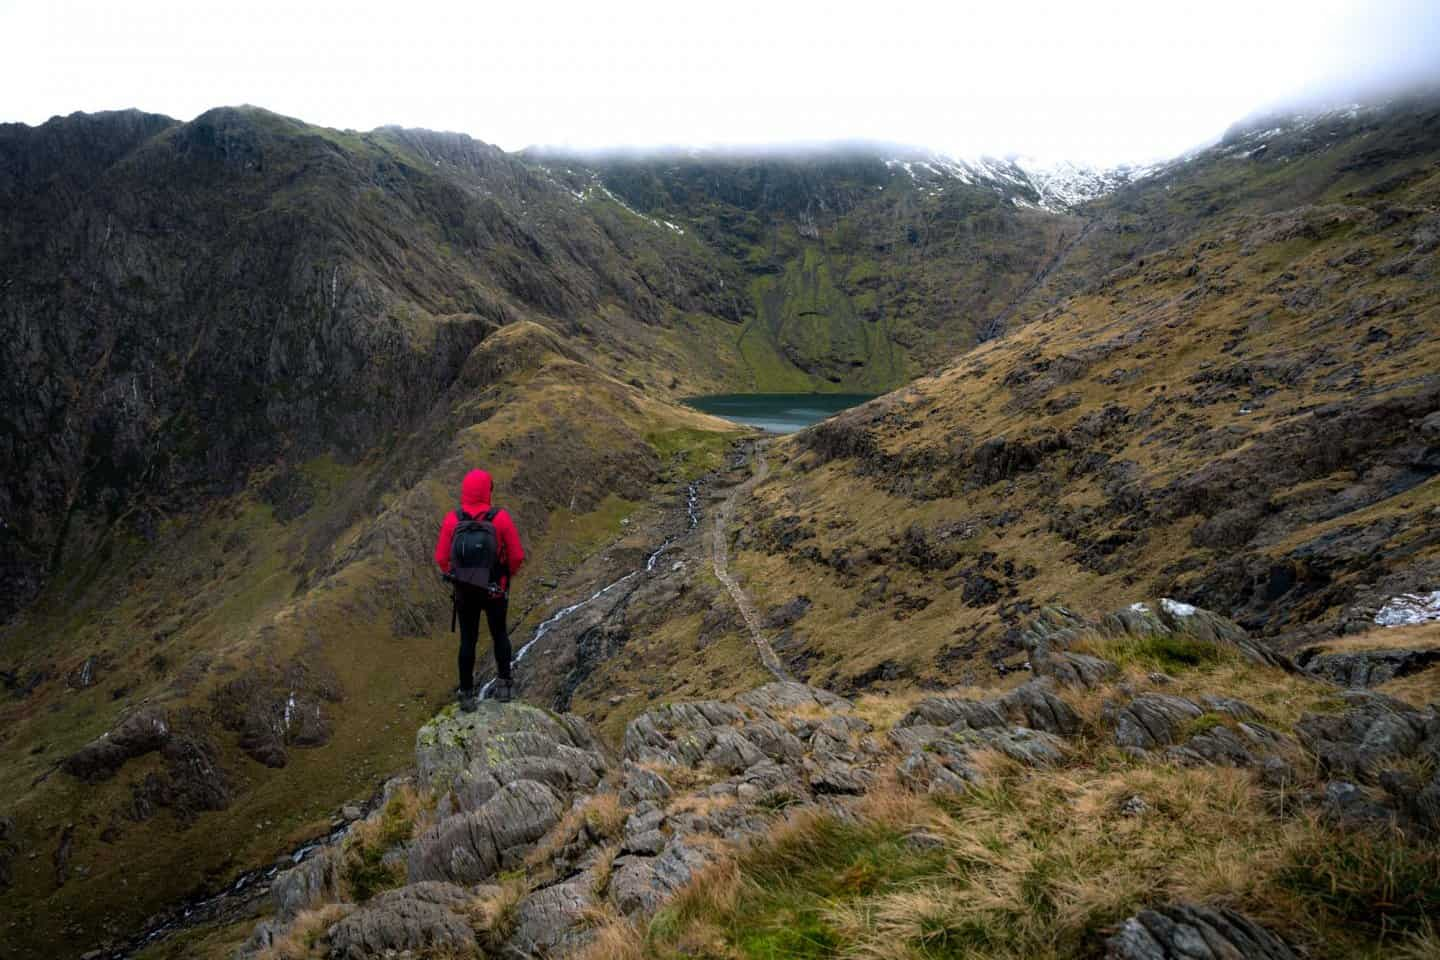 My partner Adam (WeOwntheMoment Photography) observing Llyn Glaslyn and a cloud-covered Snowdon Peak.